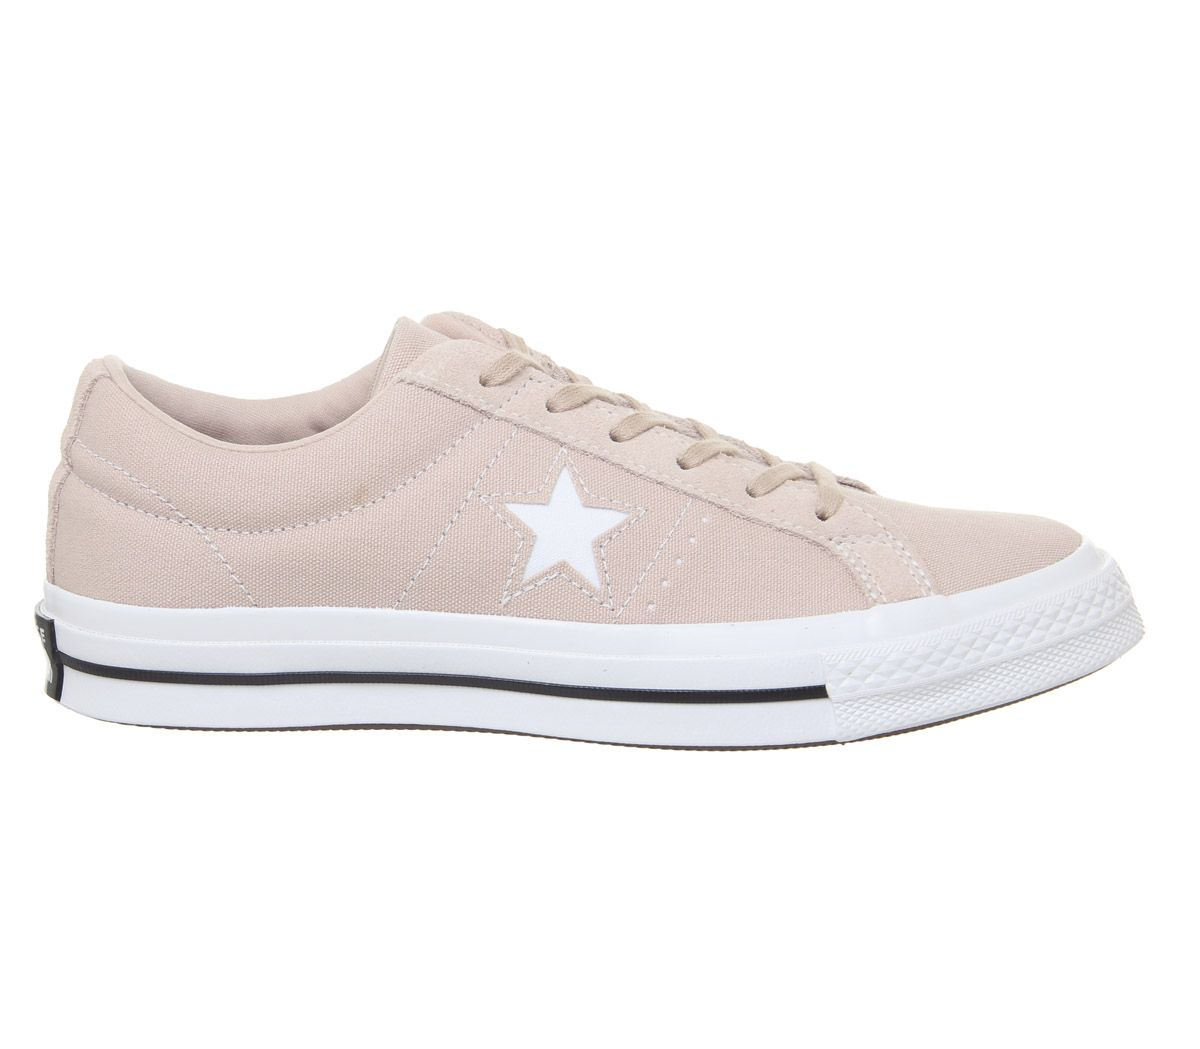 Womens-Converse-One-Star-Trainers-Particle-Beige-White-Black-Trainers-Shoes thumbnail 3